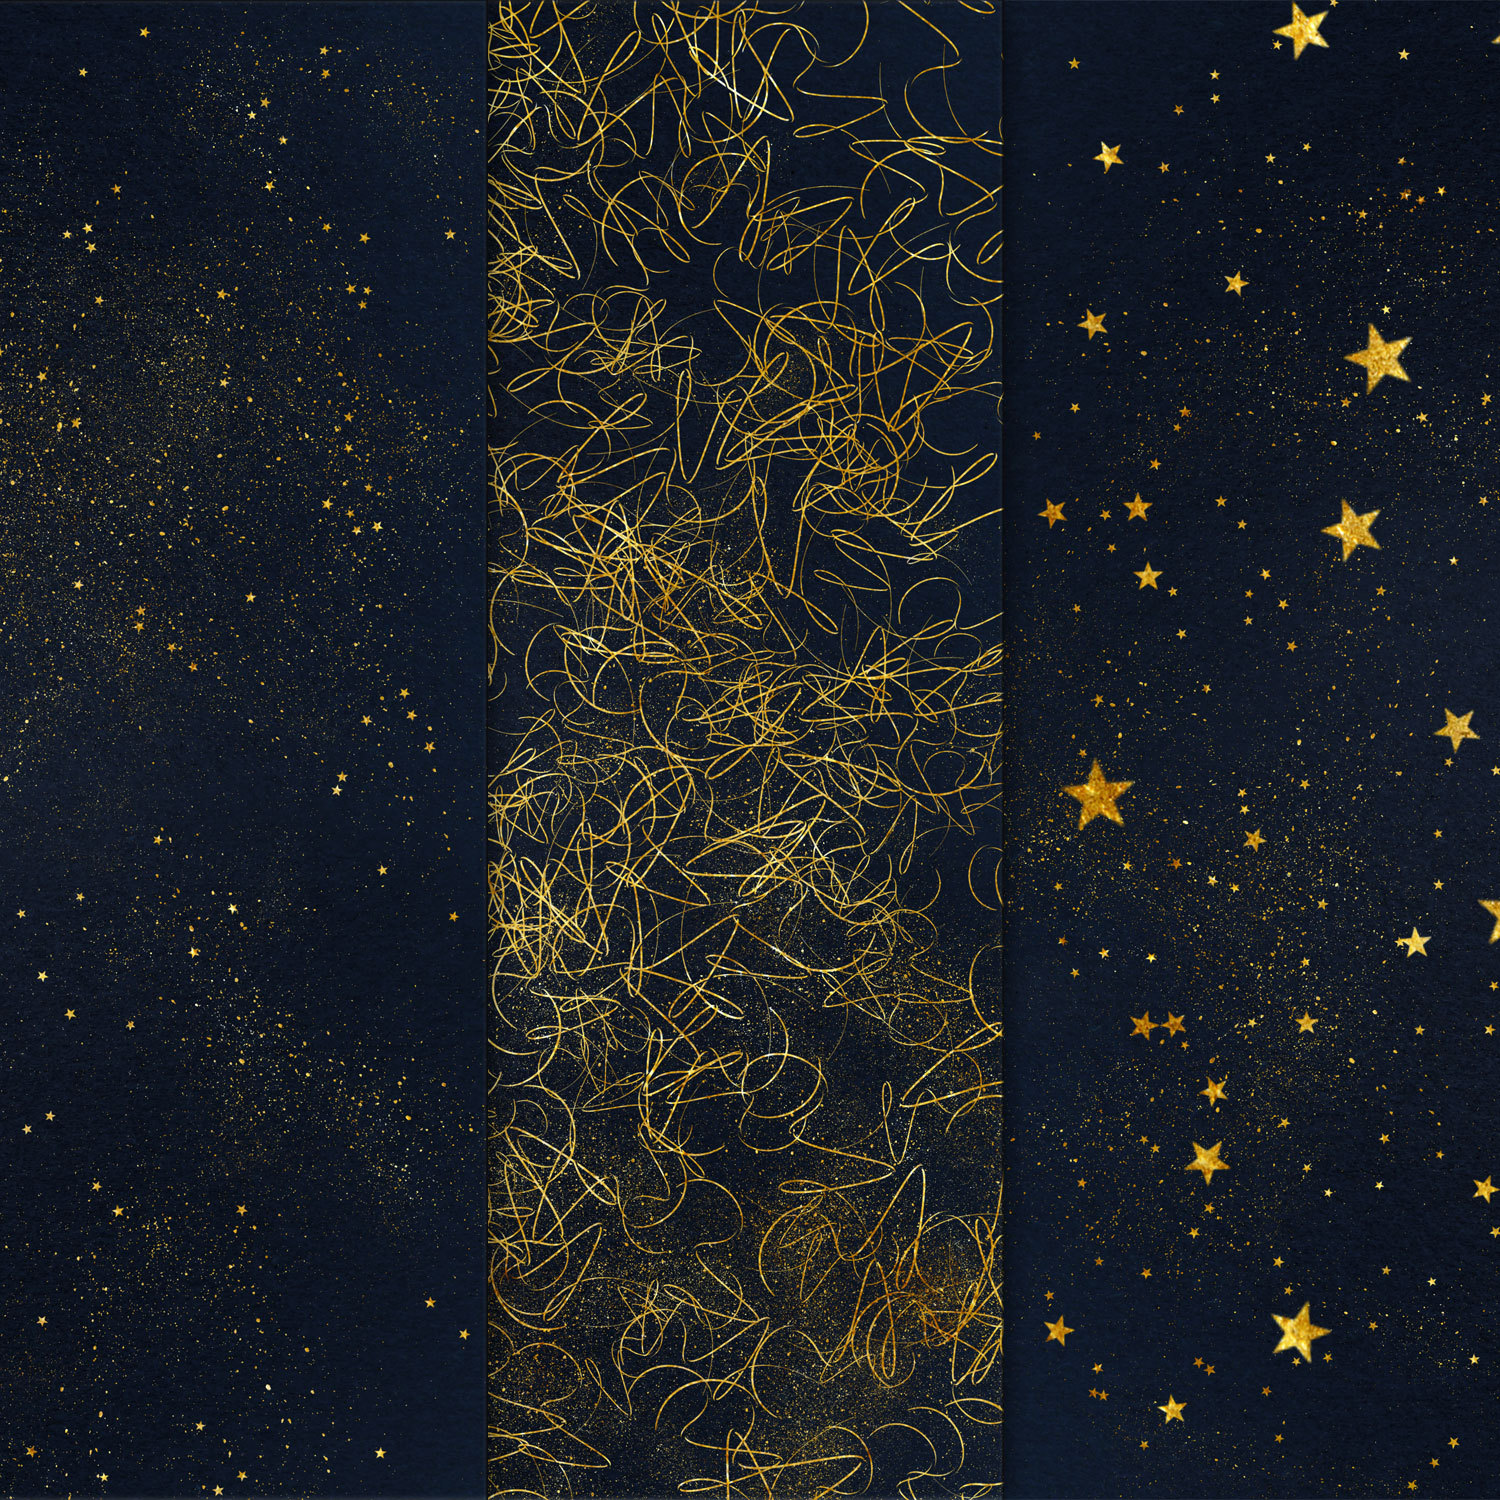 Starry Night Backgrounds example image 2